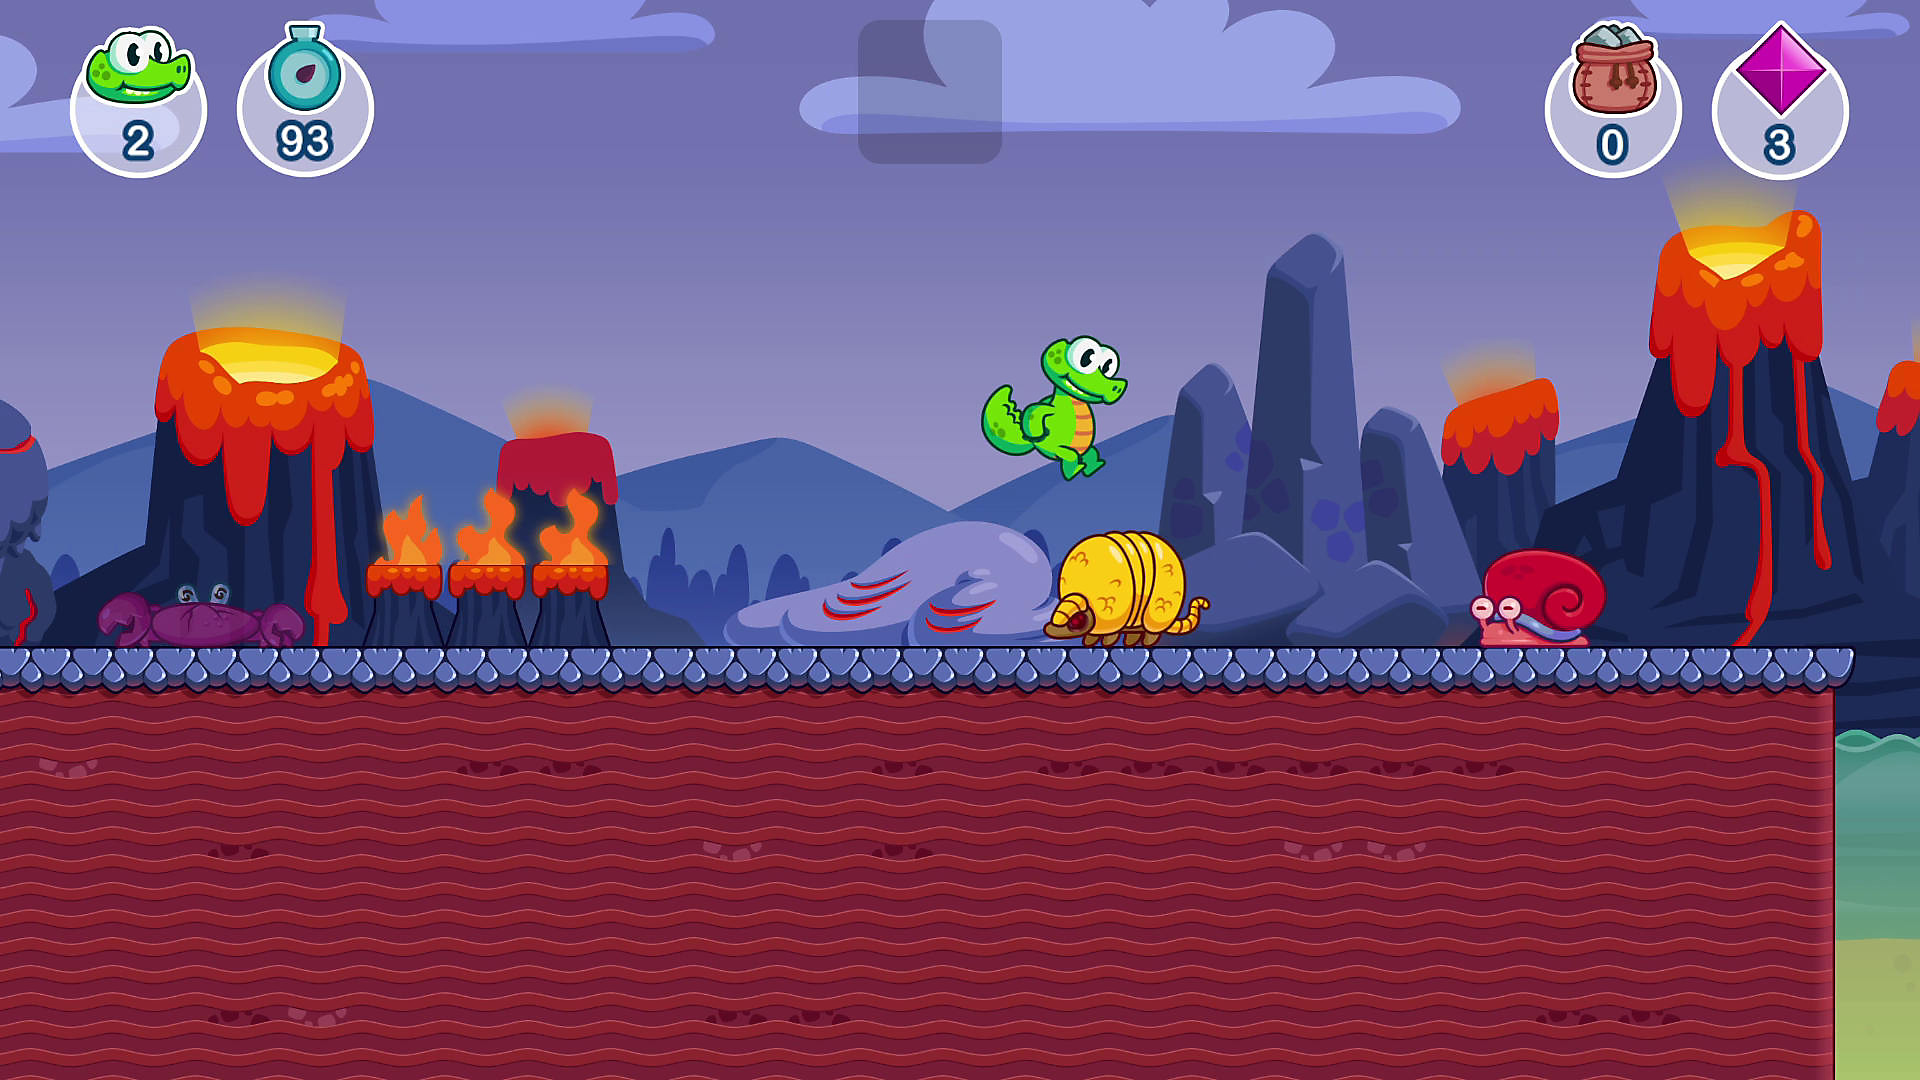 Croc's World 3 en acción